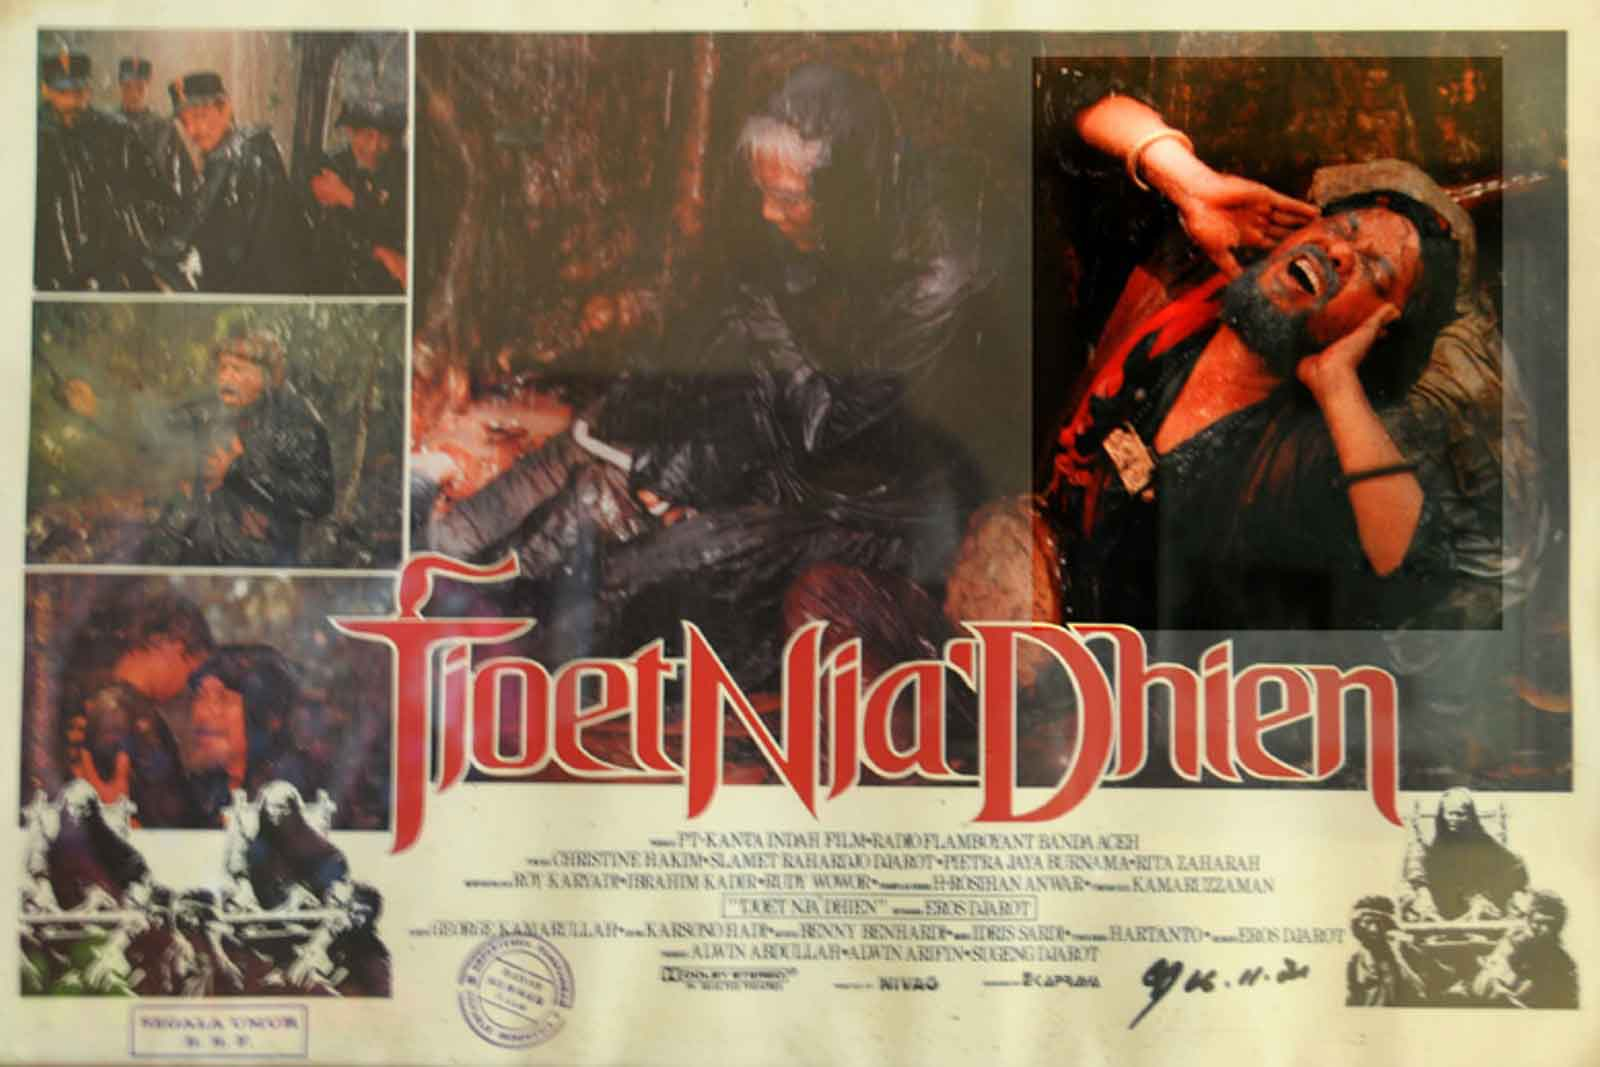 Promotional poster for Tjoet Nja Dhien